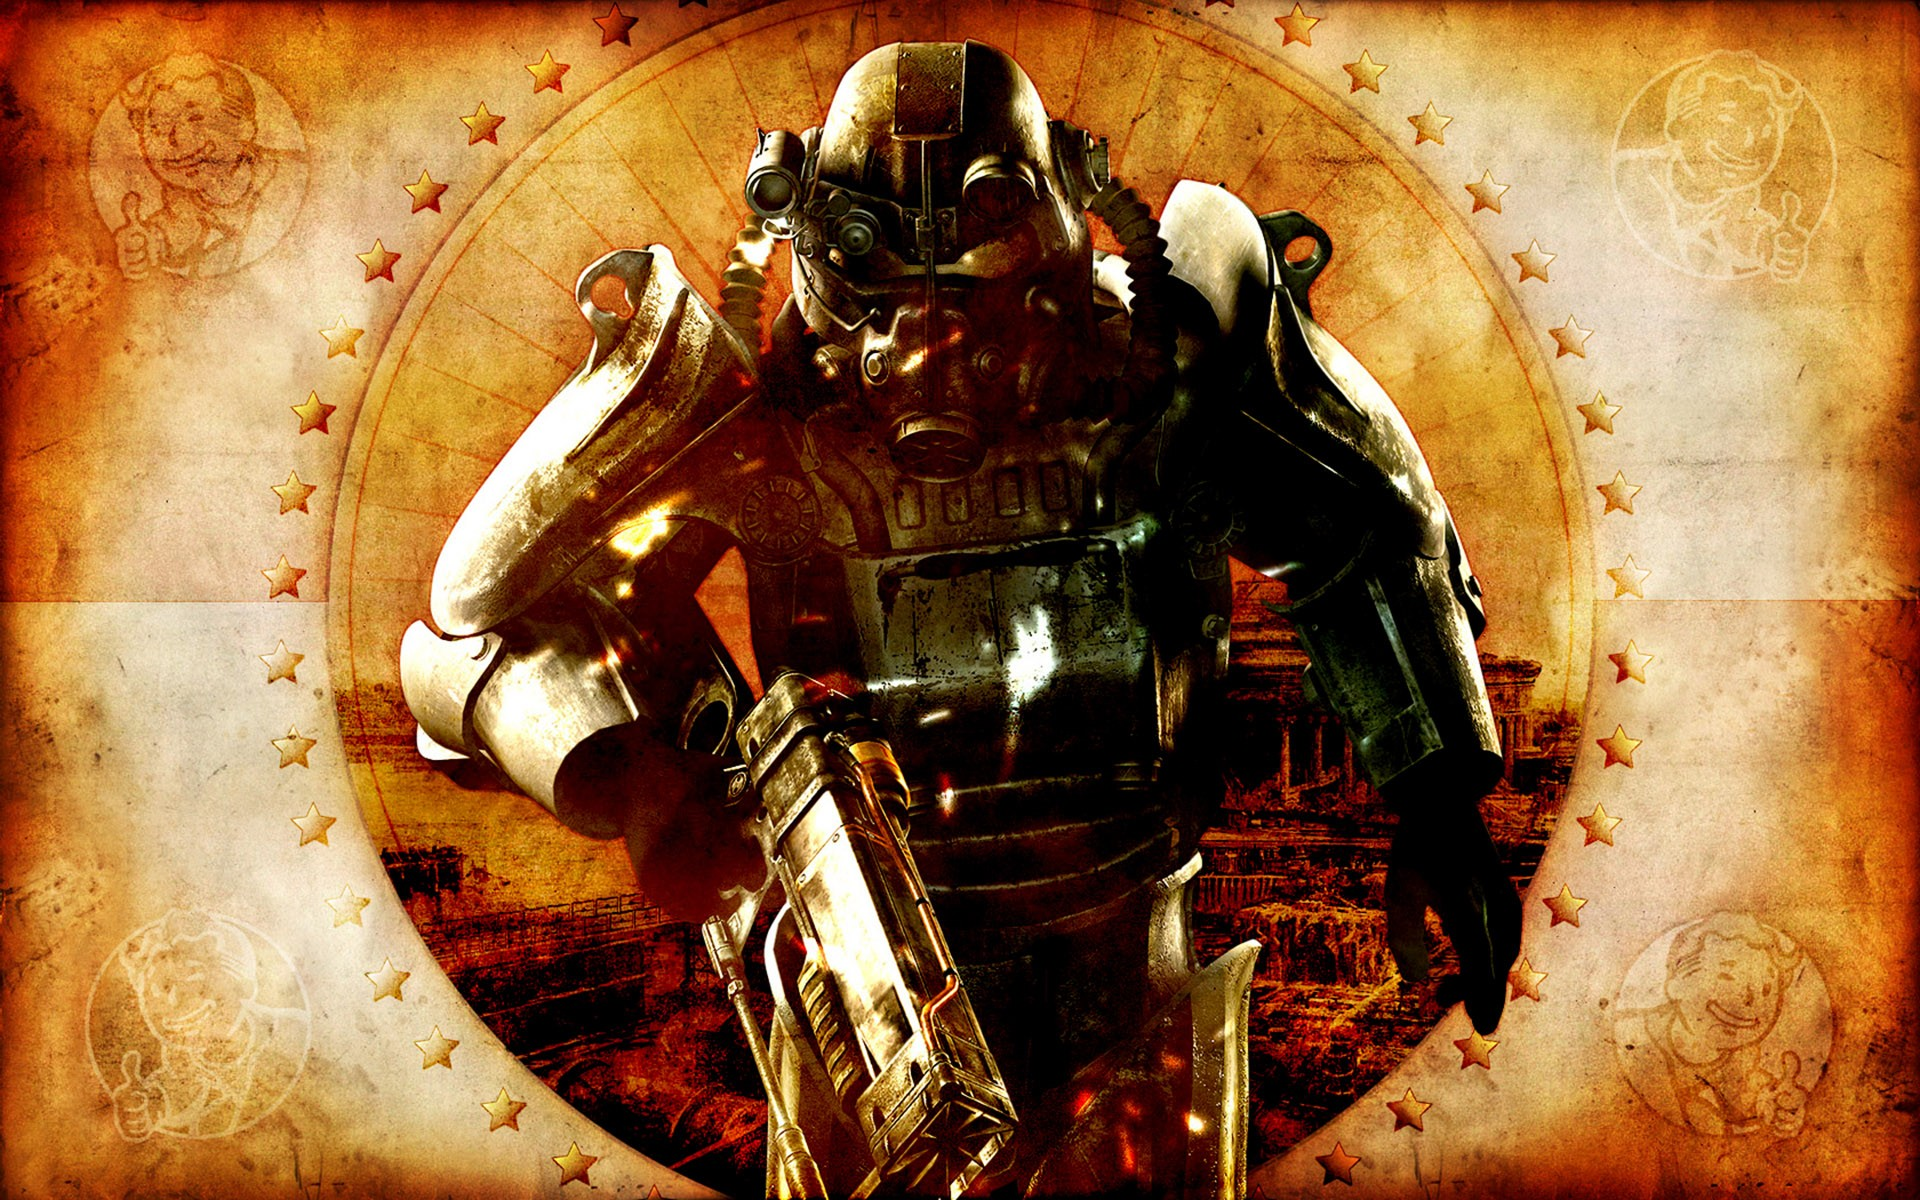 Fallout 4 HD Wallpaper ·① Download Free Cool High